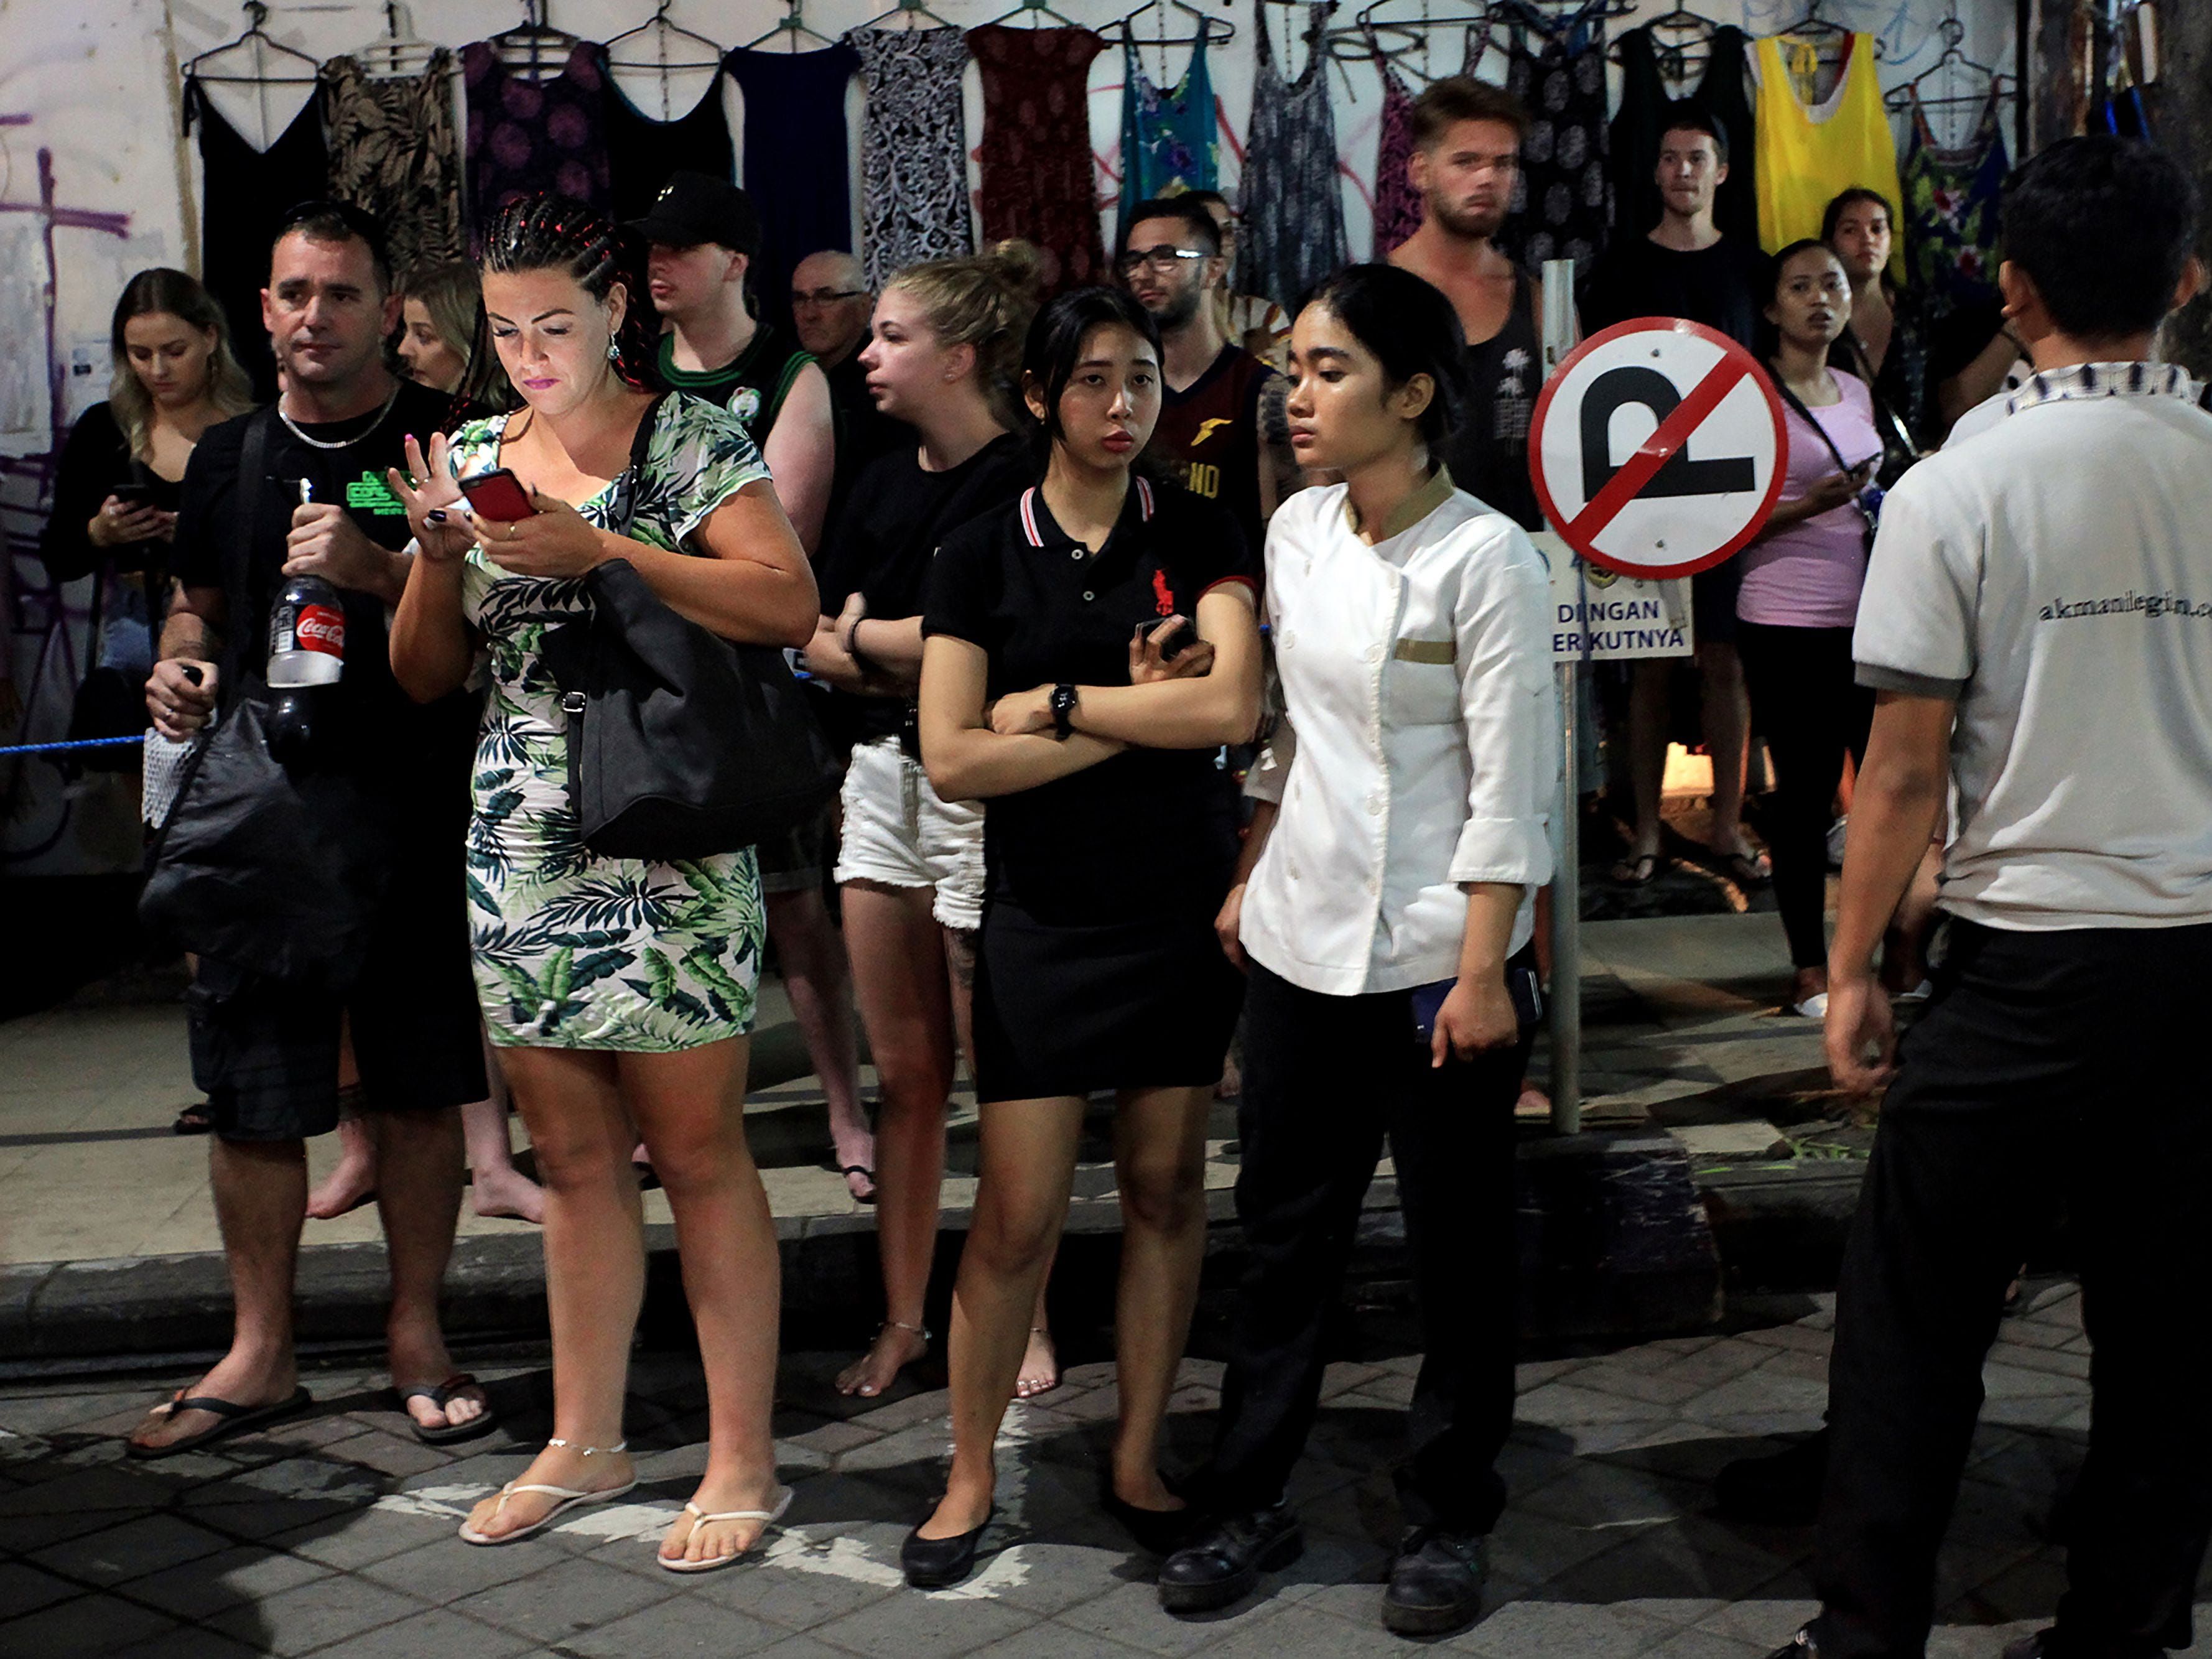 Foreign tourists and hotel staff stand on the street after being evacuated in Bali's capital Denpasar on Aug. 5, 2018, after a major earthquake rocked neighboring Lombok island.